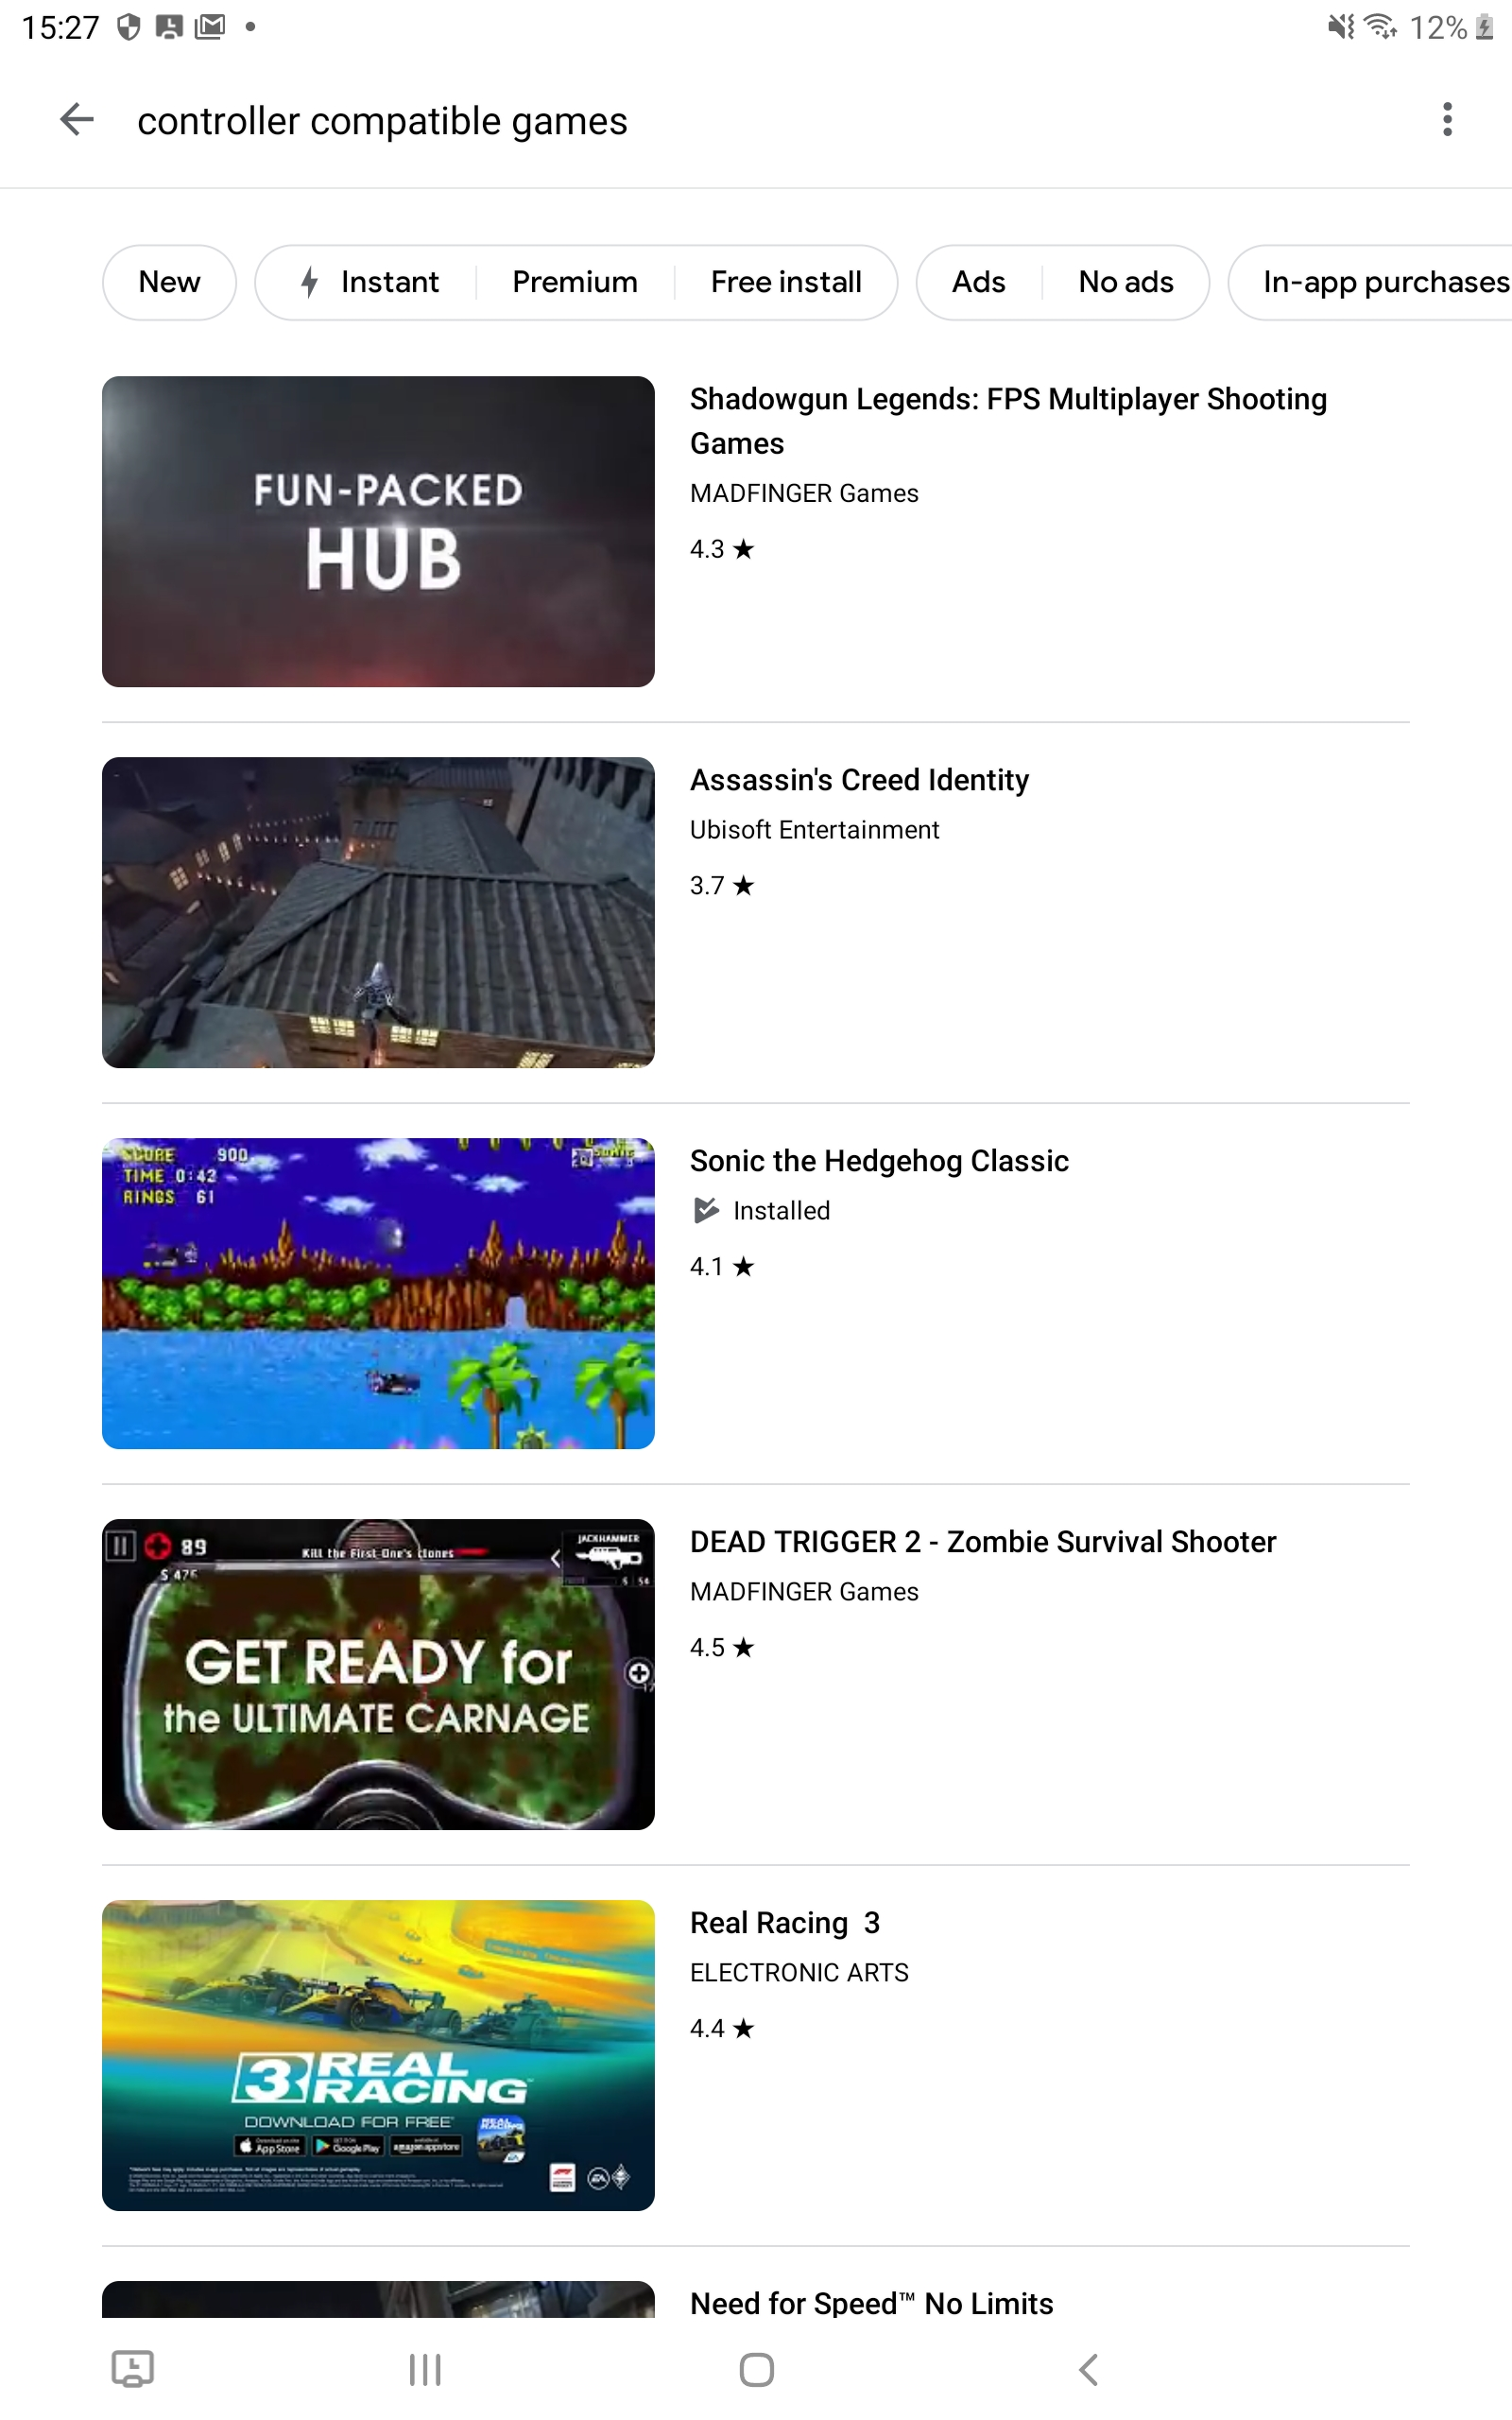 Screenshots of a search on Google play for controller compatible games.